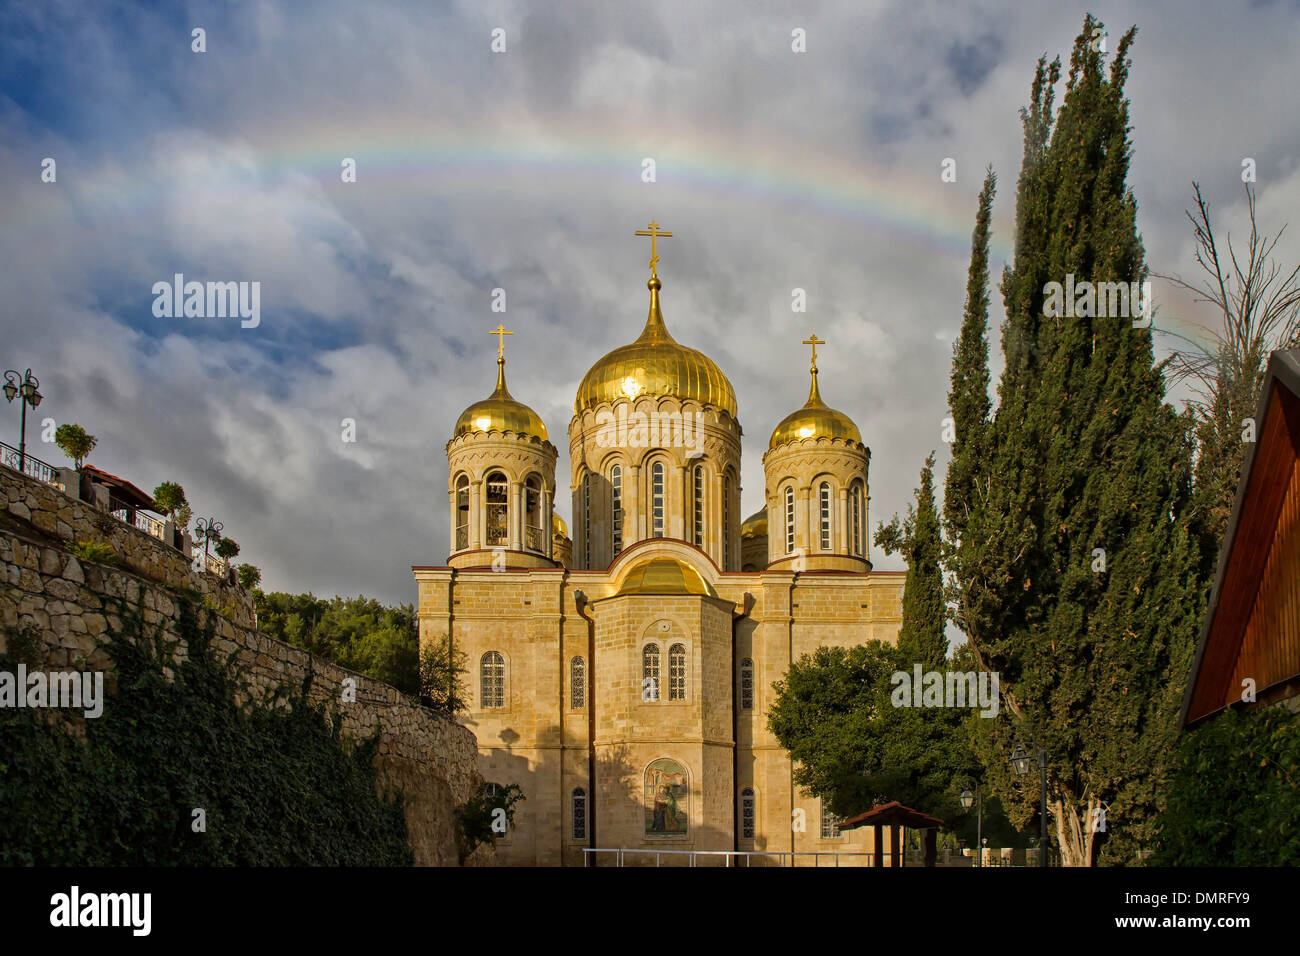 A rainbow breaks over the golden domes of Gornensky monastery of the Russian Ecclesiastical Mission in Jerusalem. - Stock Image